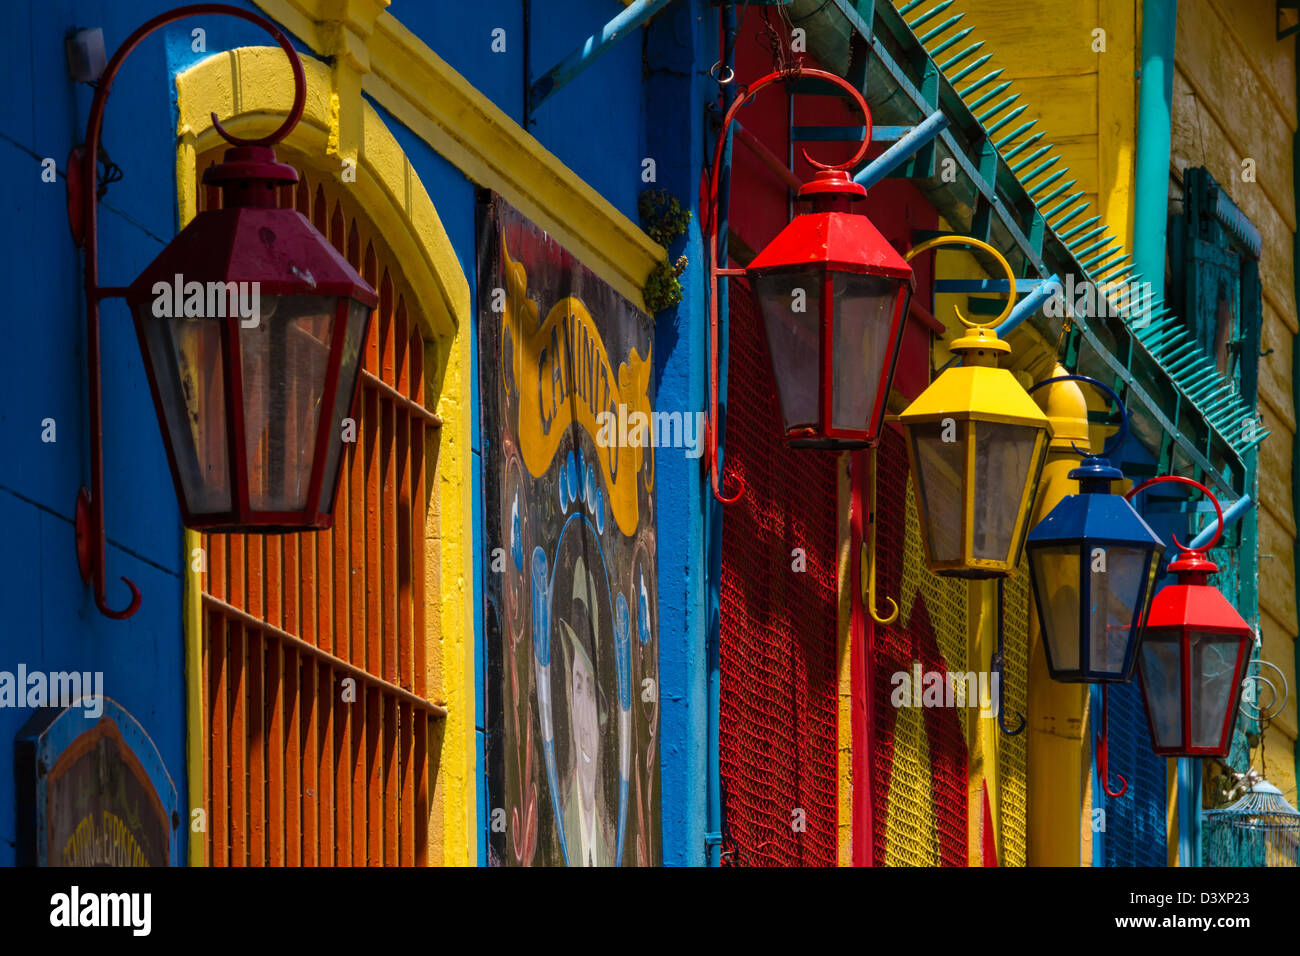 Colourful street lights and vividly painted walls in bright La Boca, Buenos Aires, Argentina - Stock Image